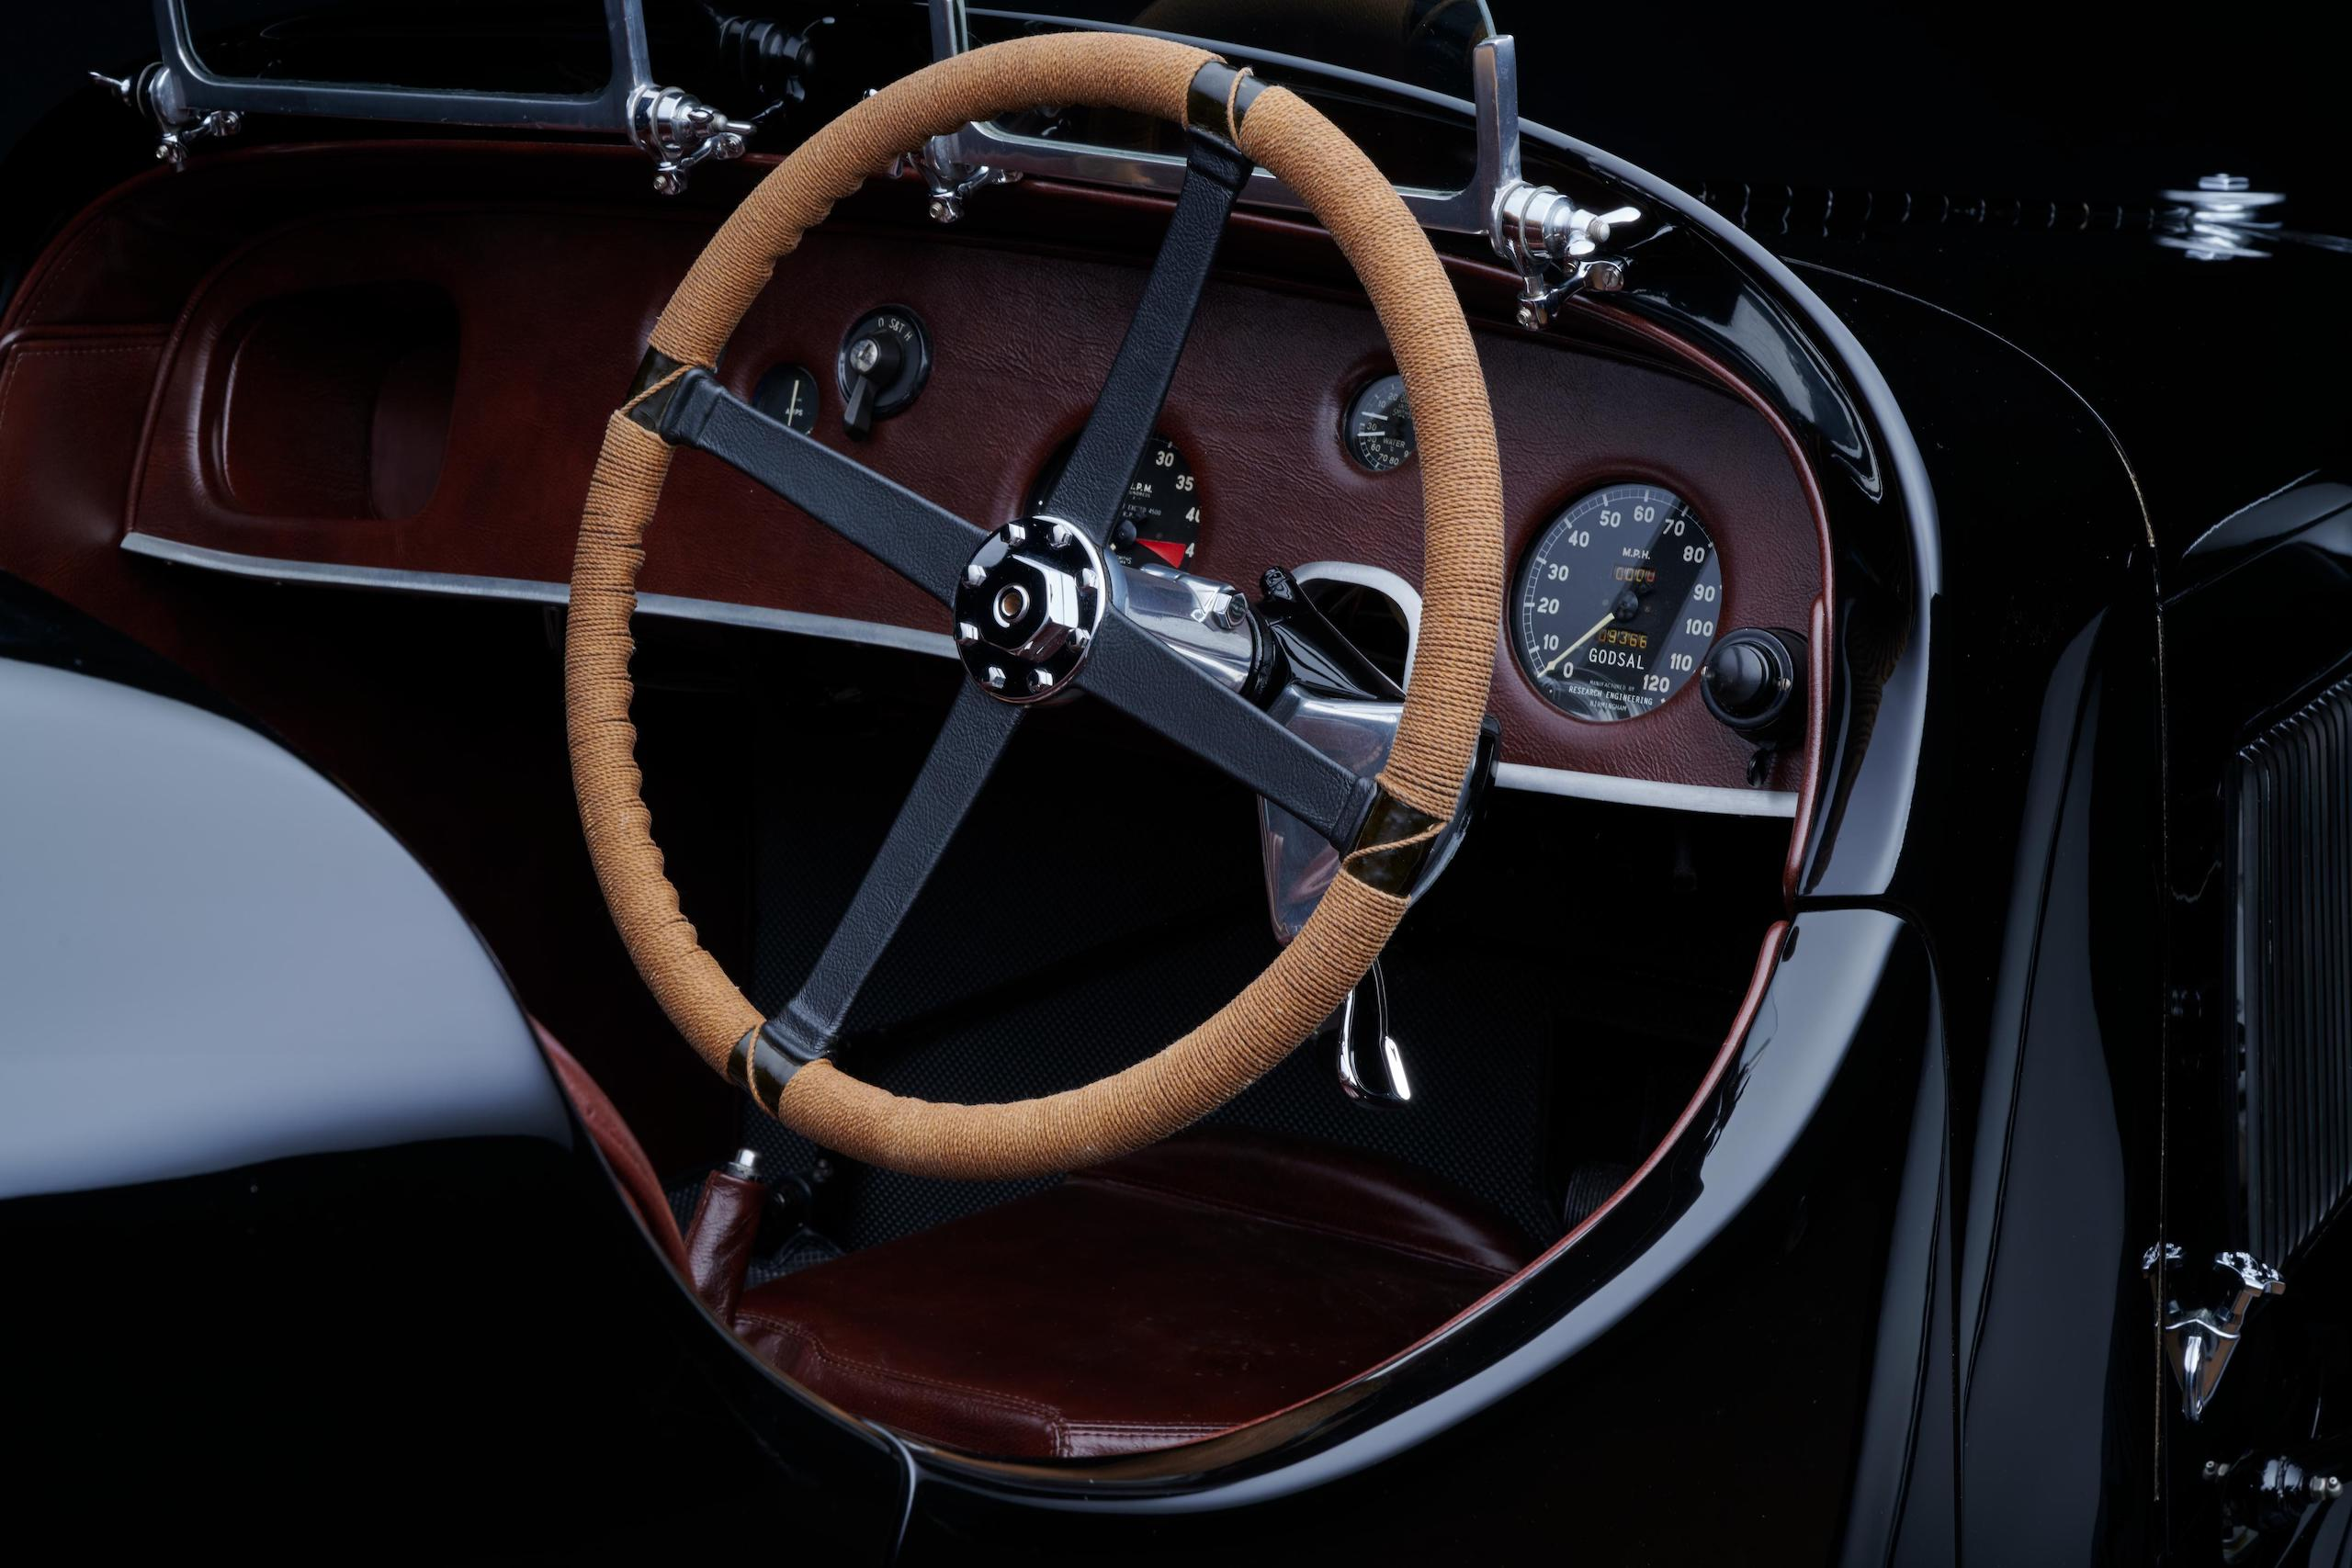 1935 Godsal Sports Tourer steering wheel